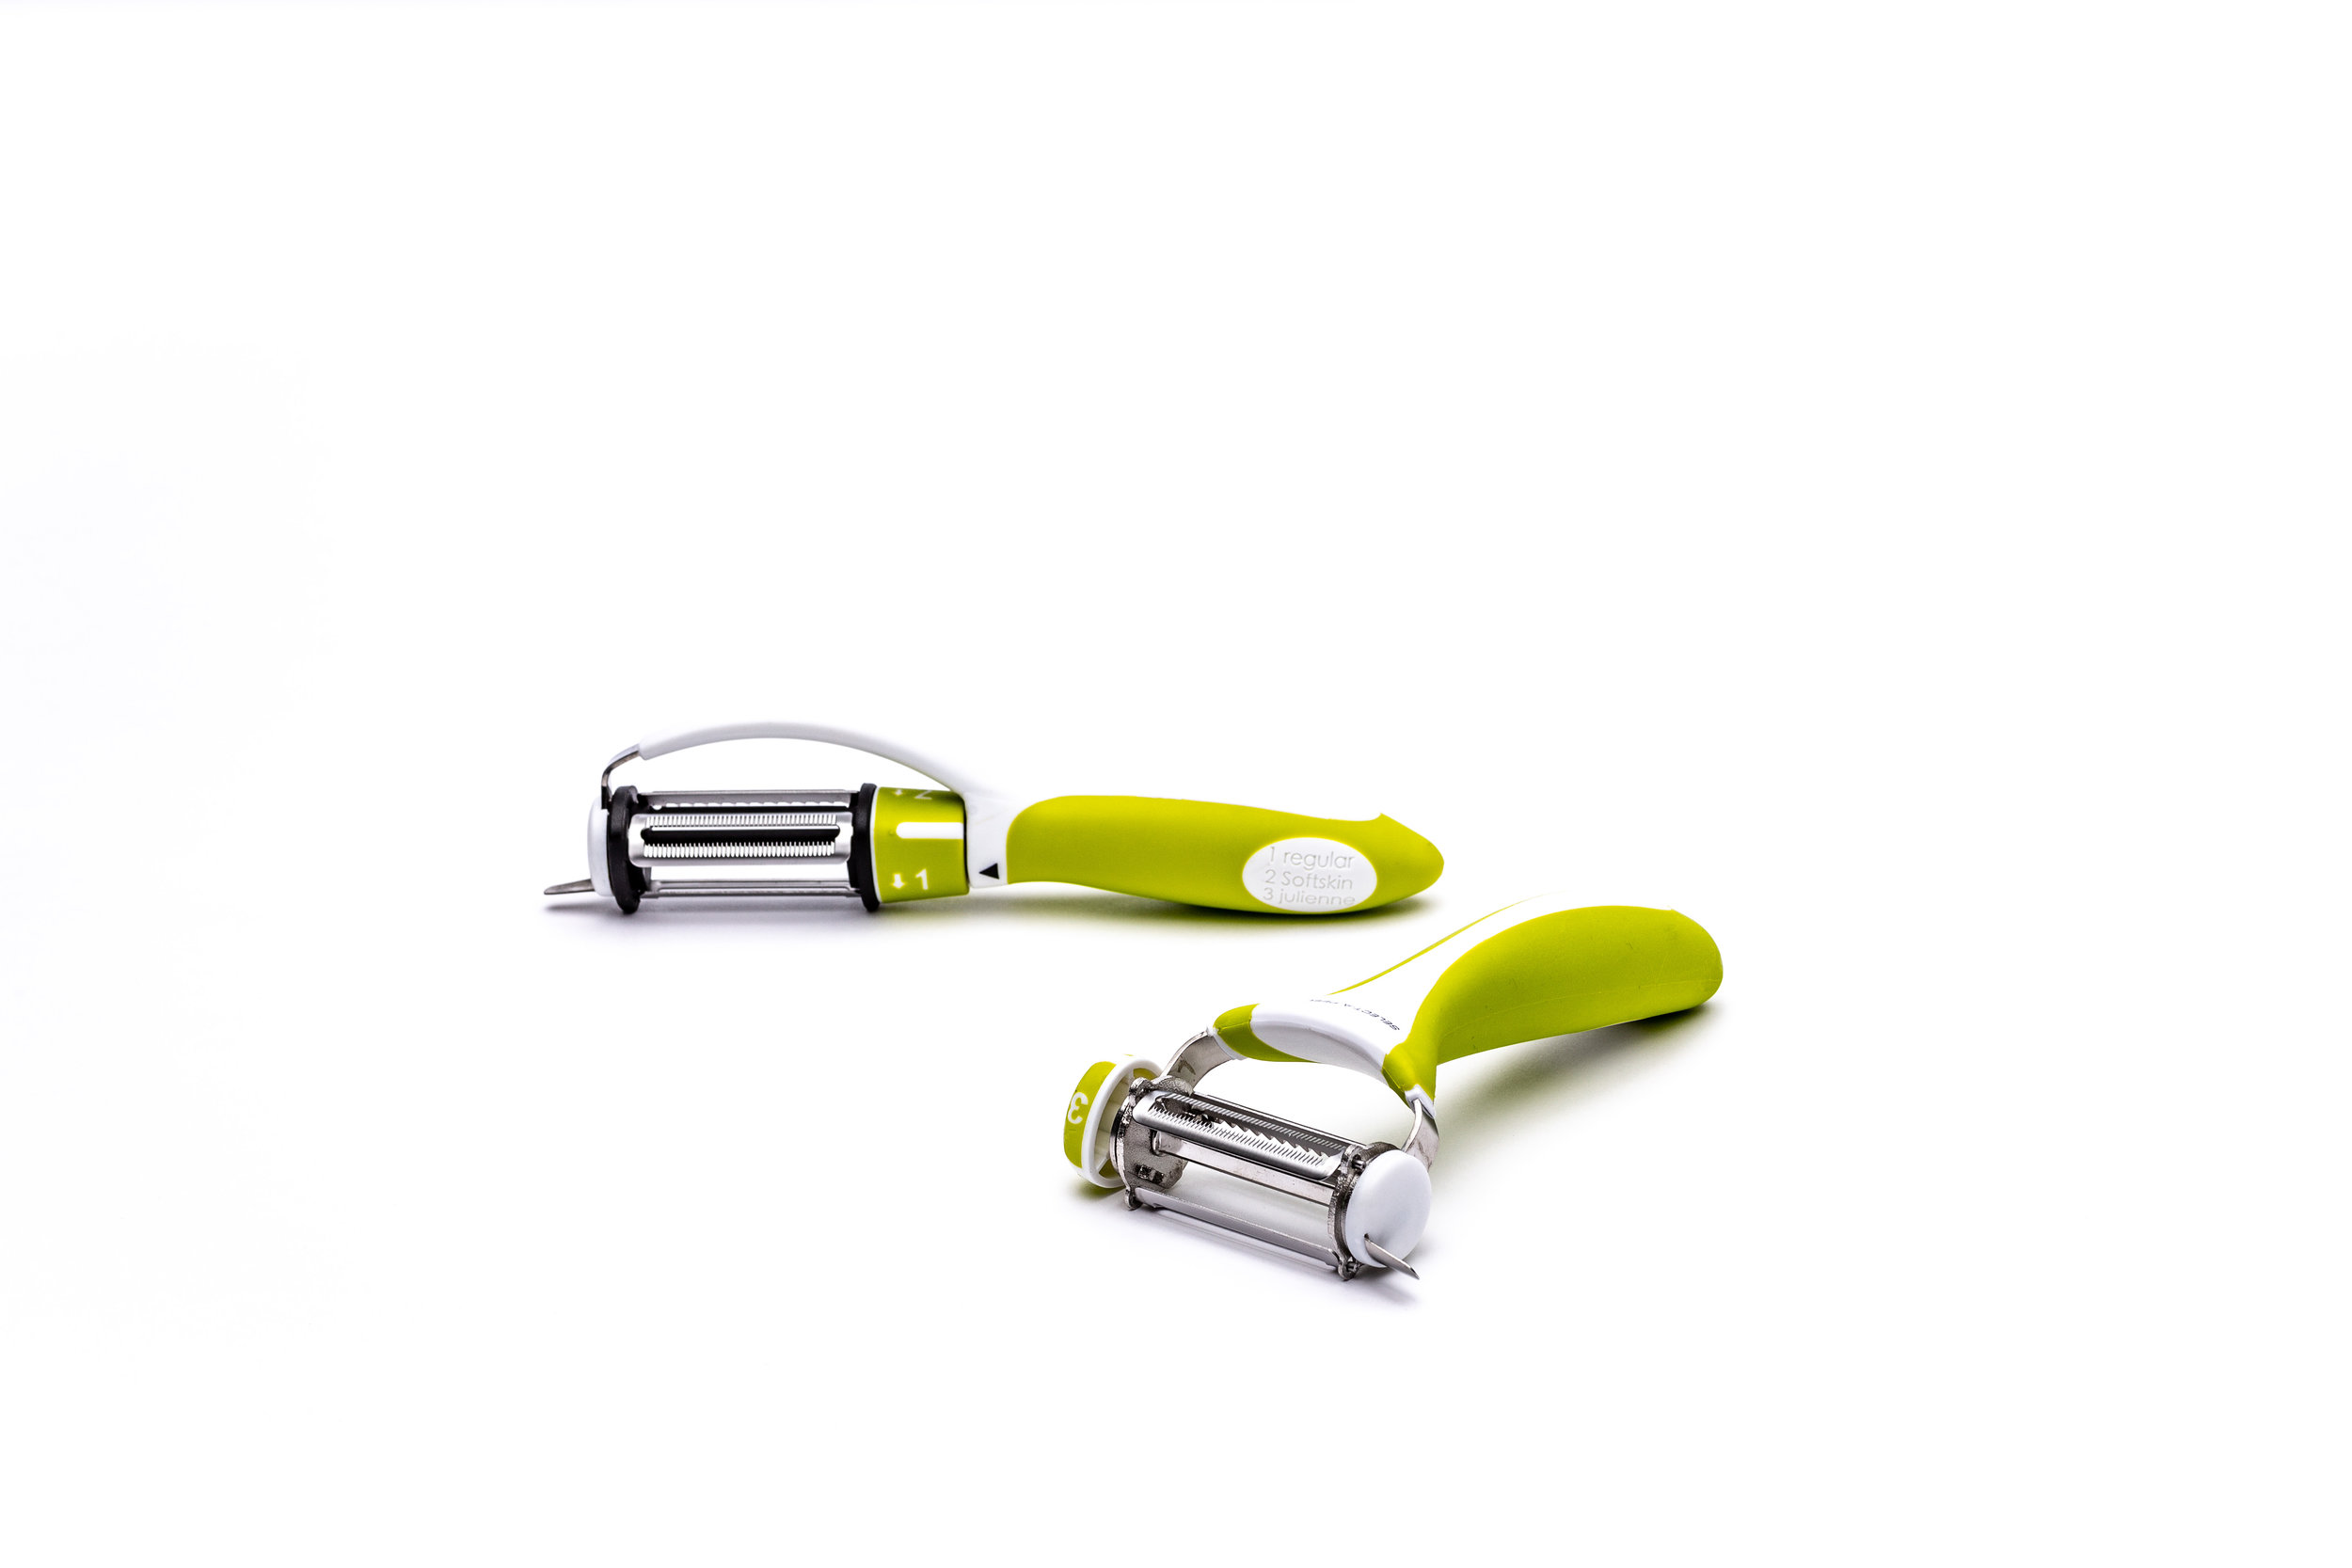 A Trident_KitchenProducts_0177.jpg